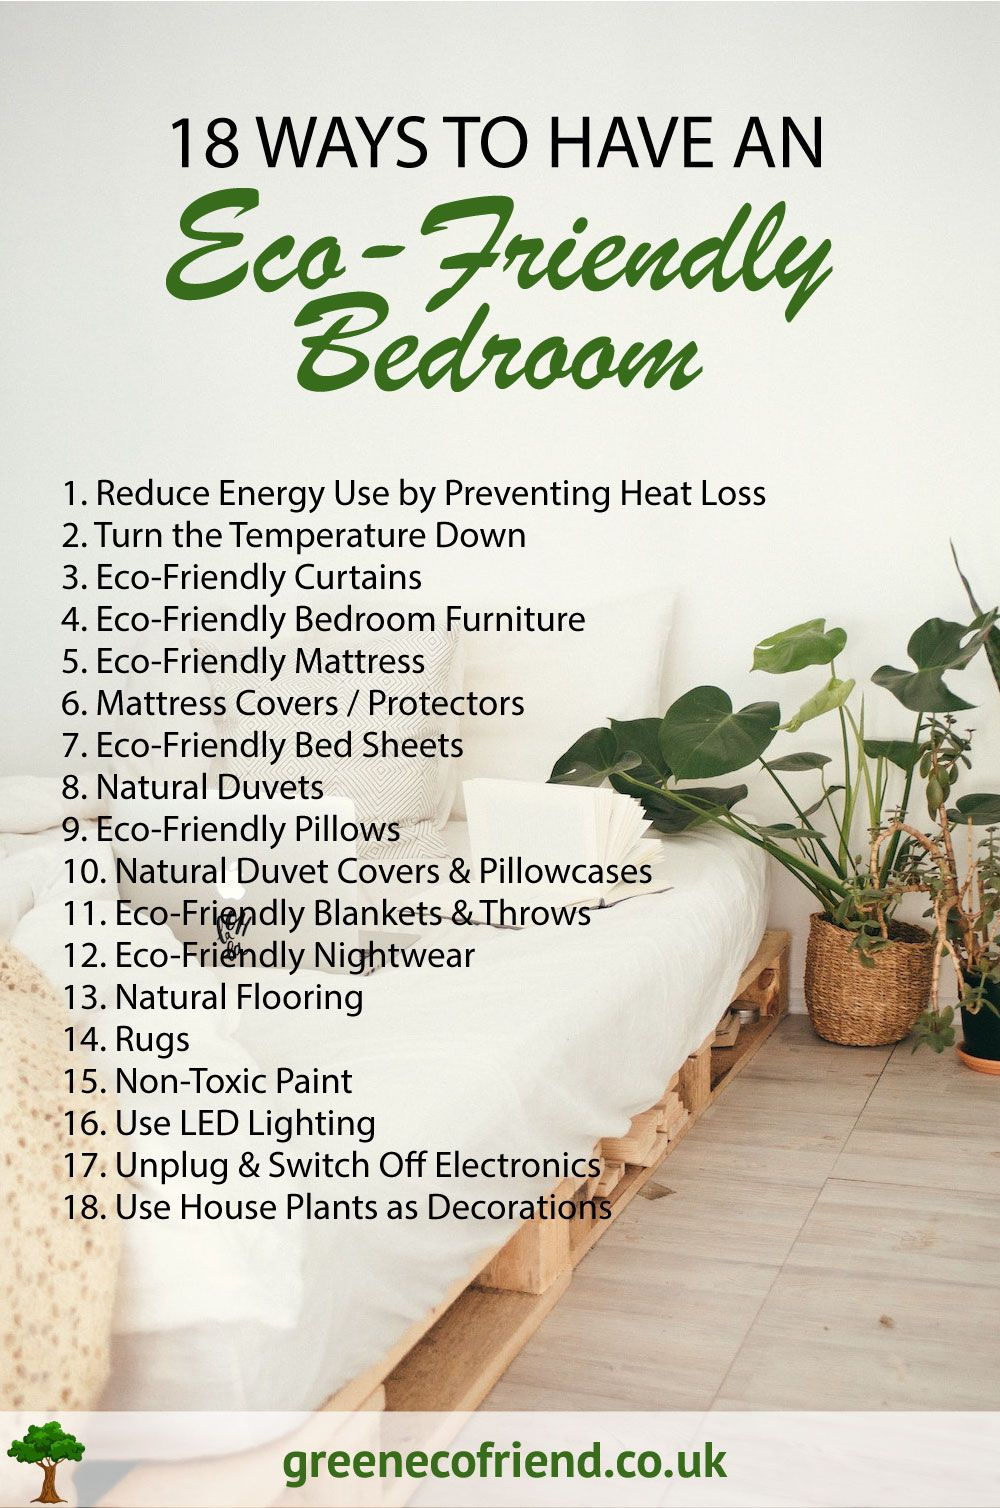 How to have an eco-friendly bedroom. 18 tips to make your bedroom healthier and more environmentally friendly. #ecoliving